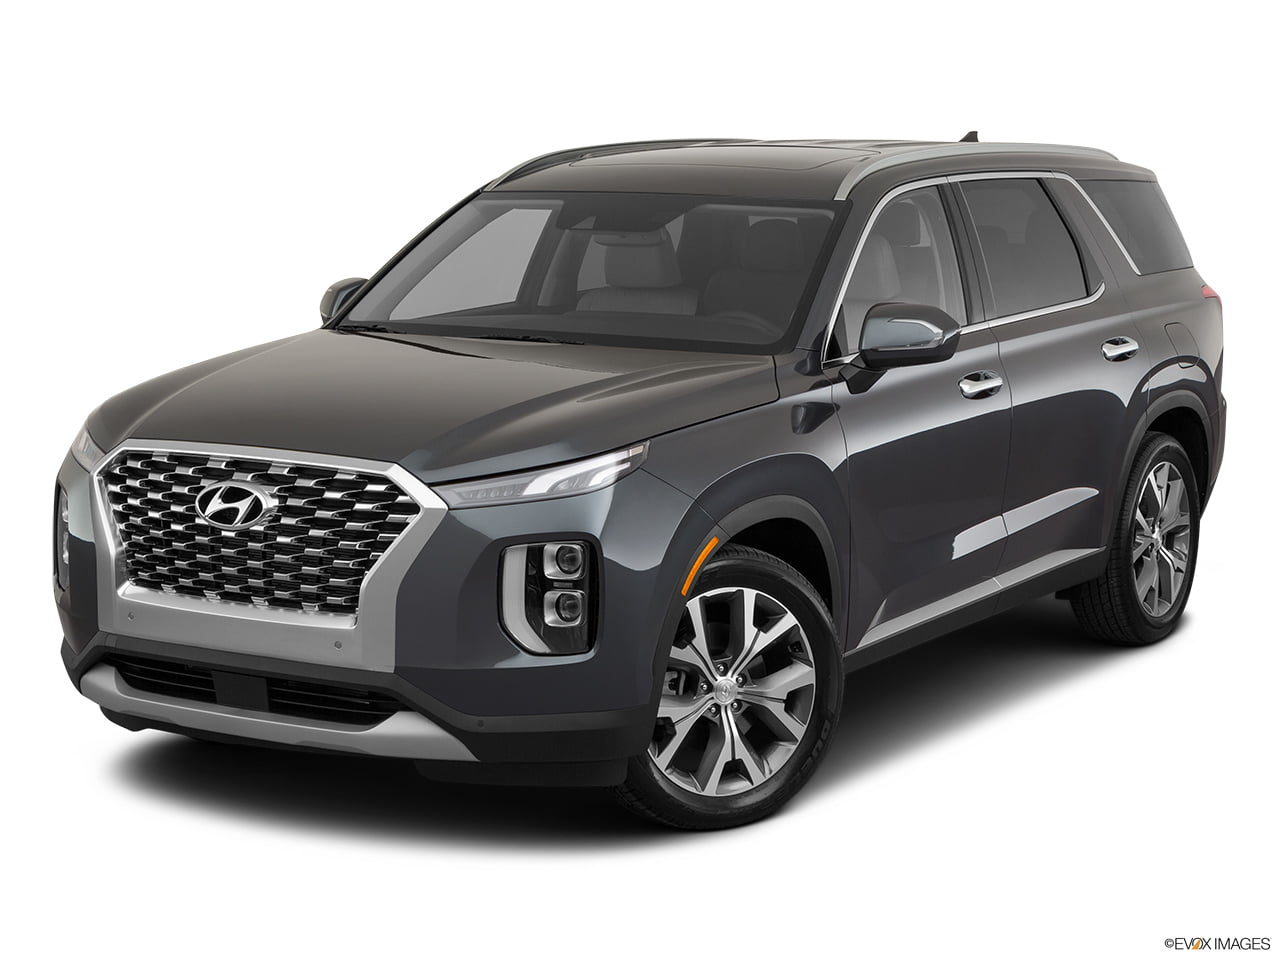 2020 hyundai palisade | best car leasing company